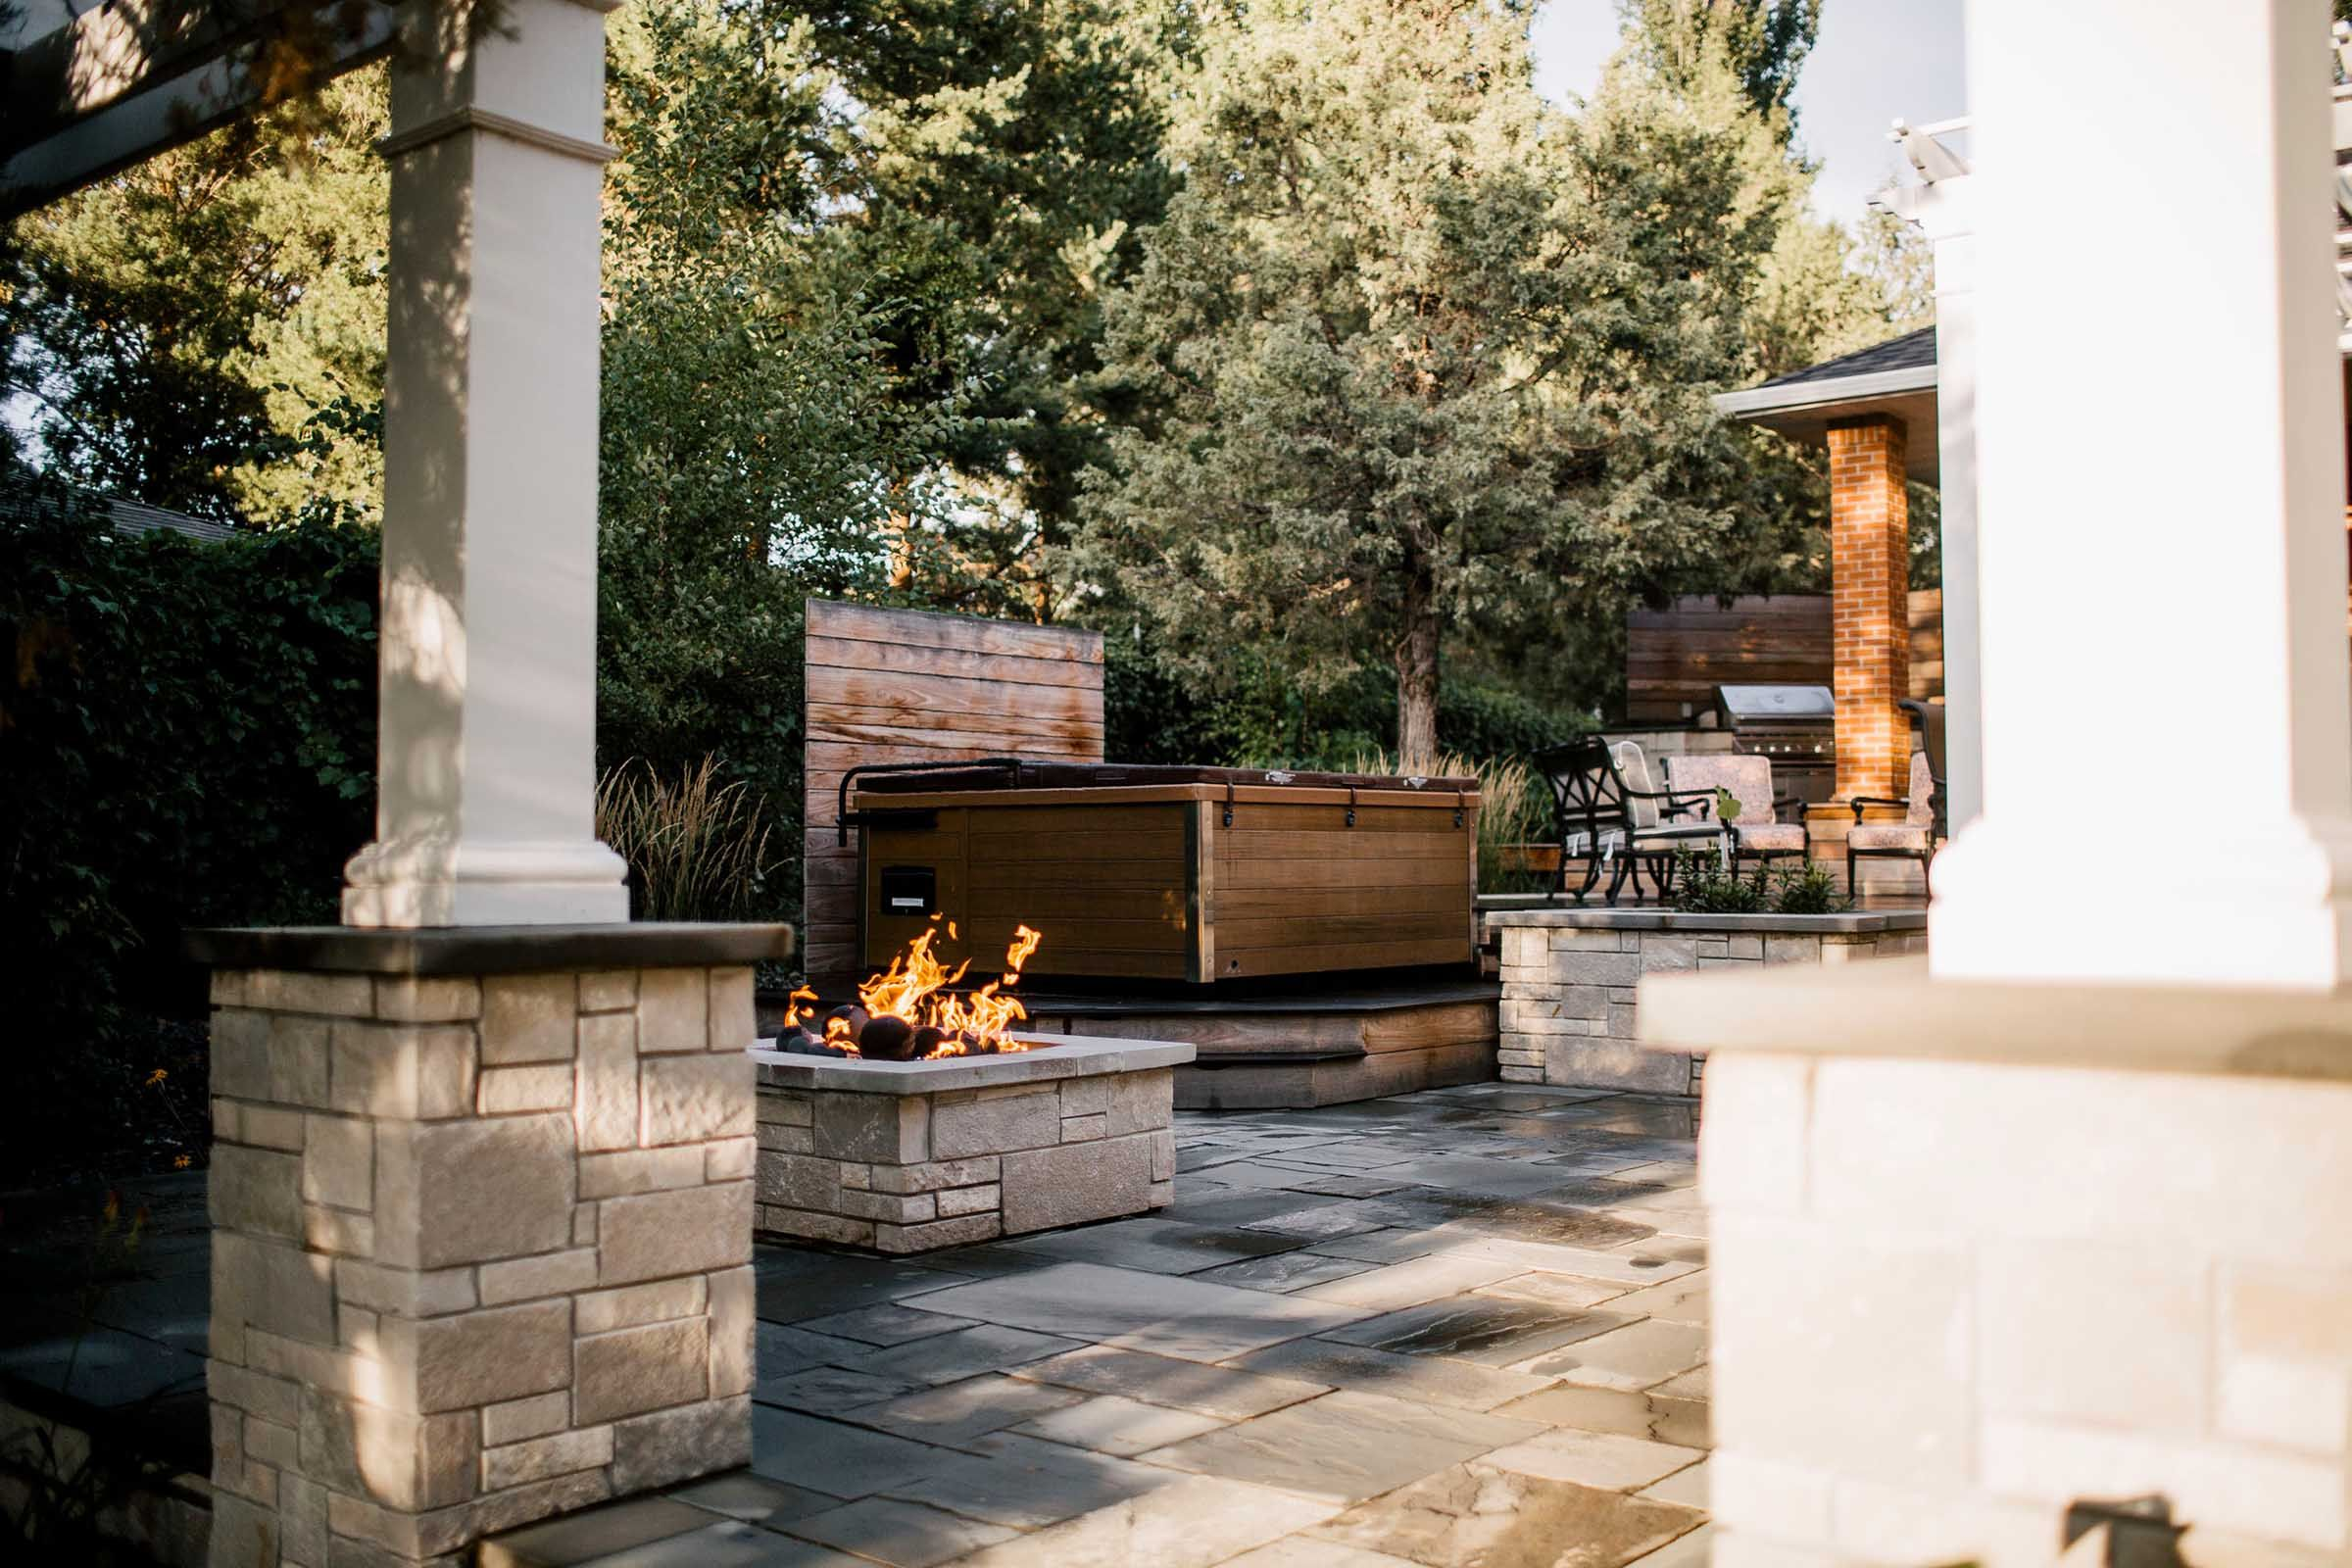 _Steffes Residence Exterior Photo Shoot for Land Elements Scape Architects-13.jpg